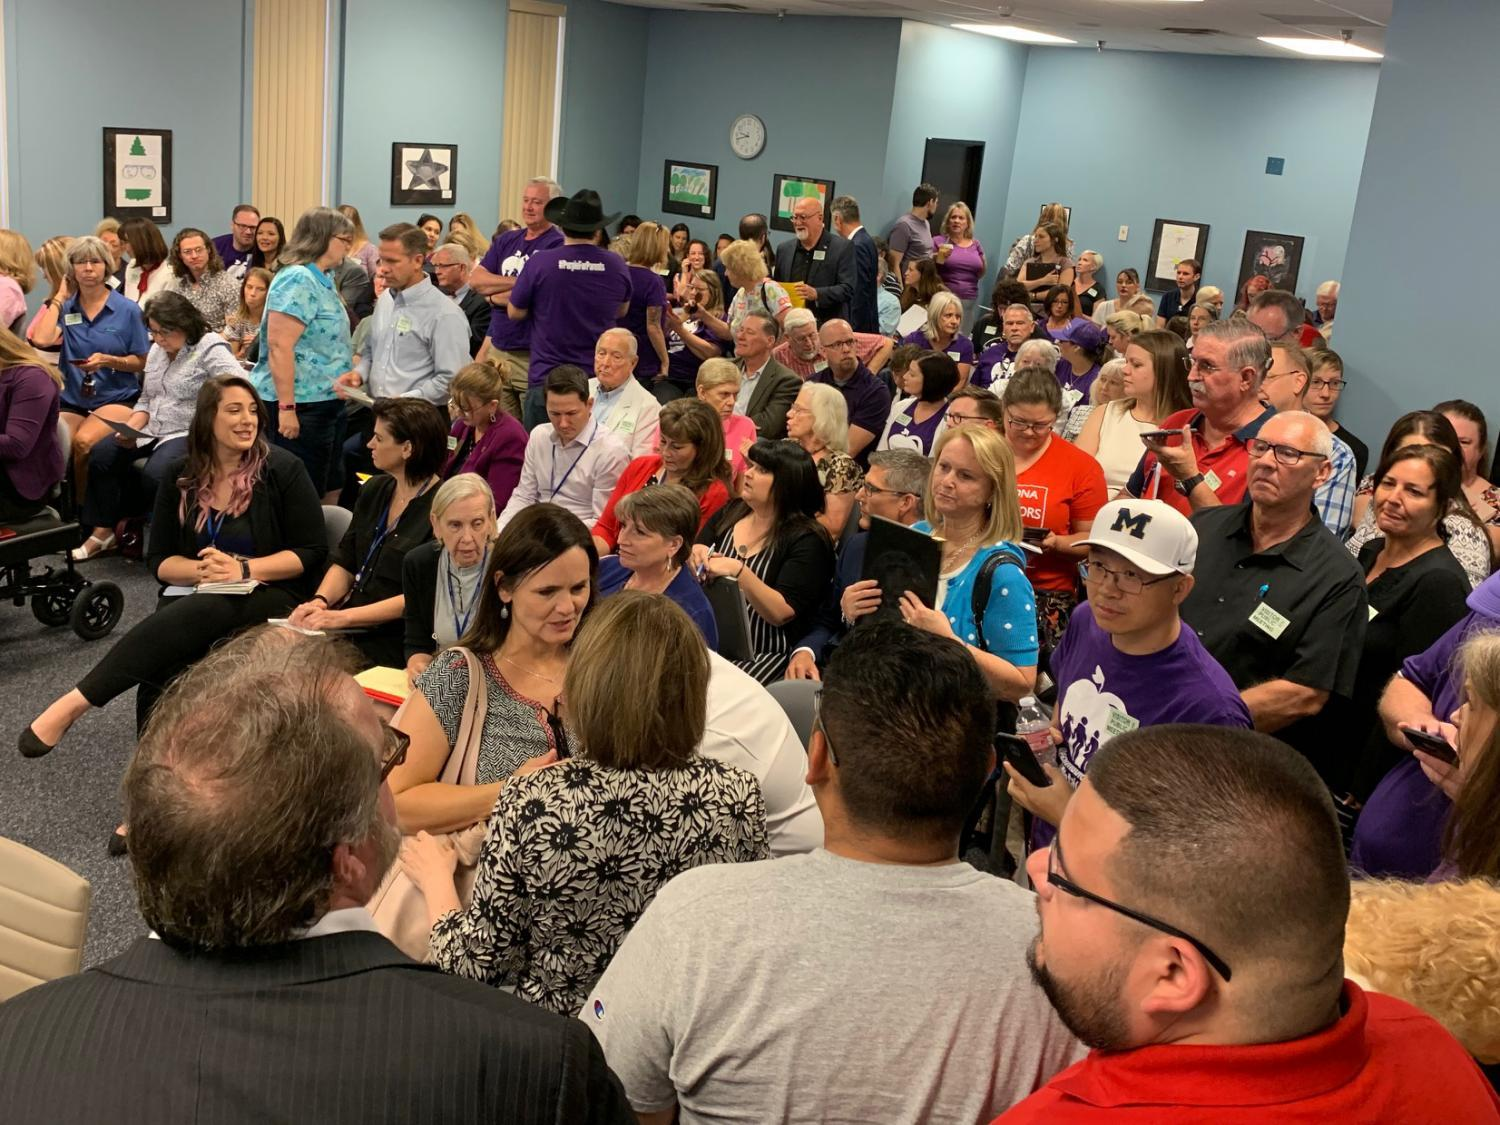 The State Board of Education was at capacity on Monday, June 24, 2019